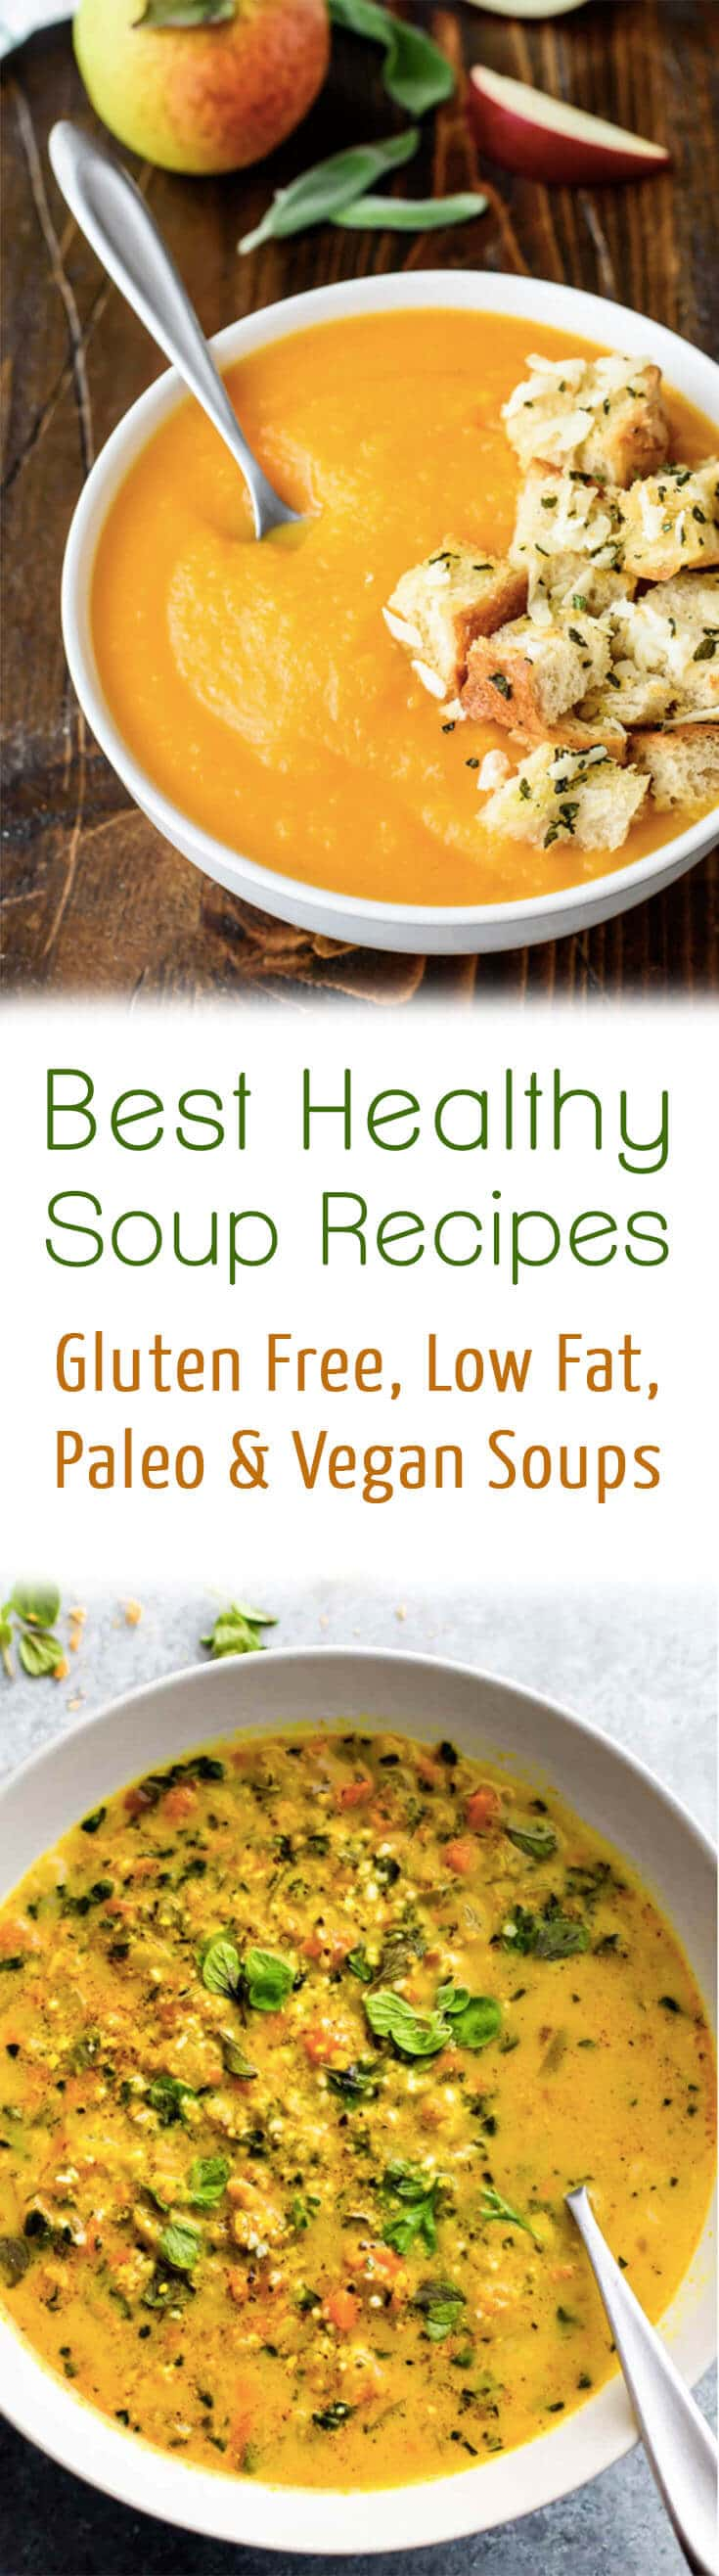 These are the 10 best healthy soup recipes on the web including a round up of gluten free, low fat, paleo and vegan soups to help keep you warm this winter!